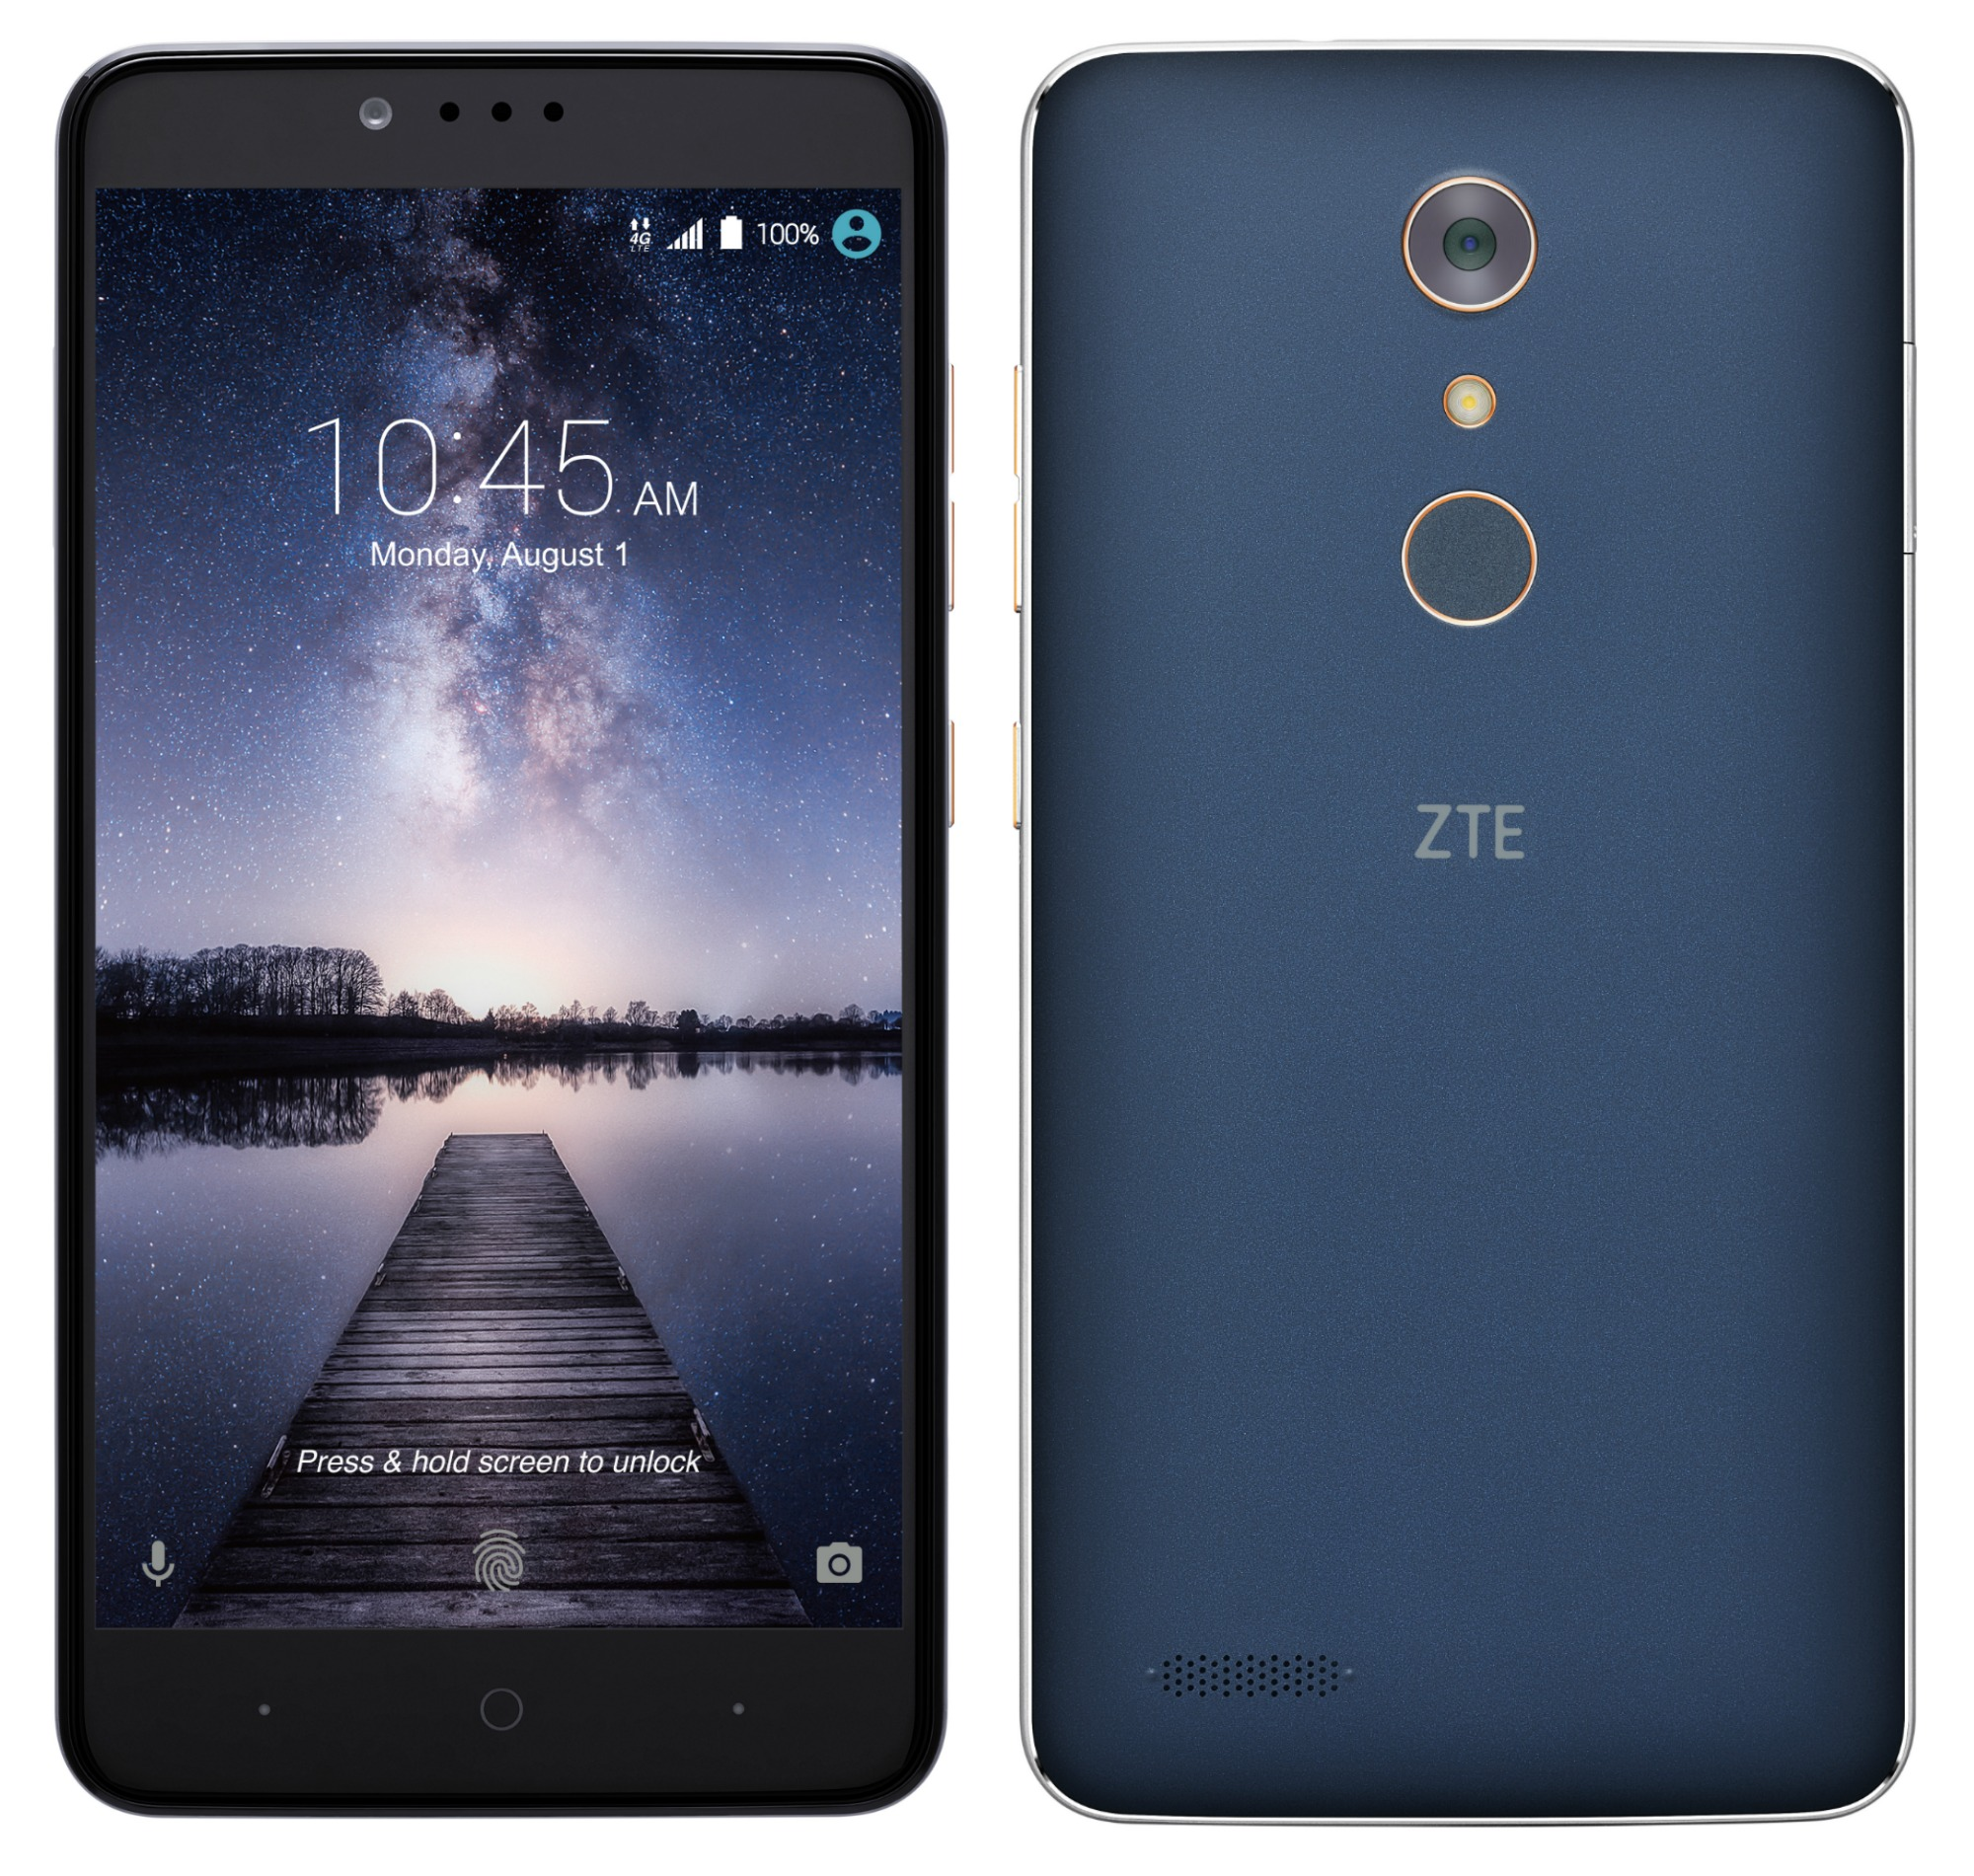 suppose zte zmax pro 2 phone will always